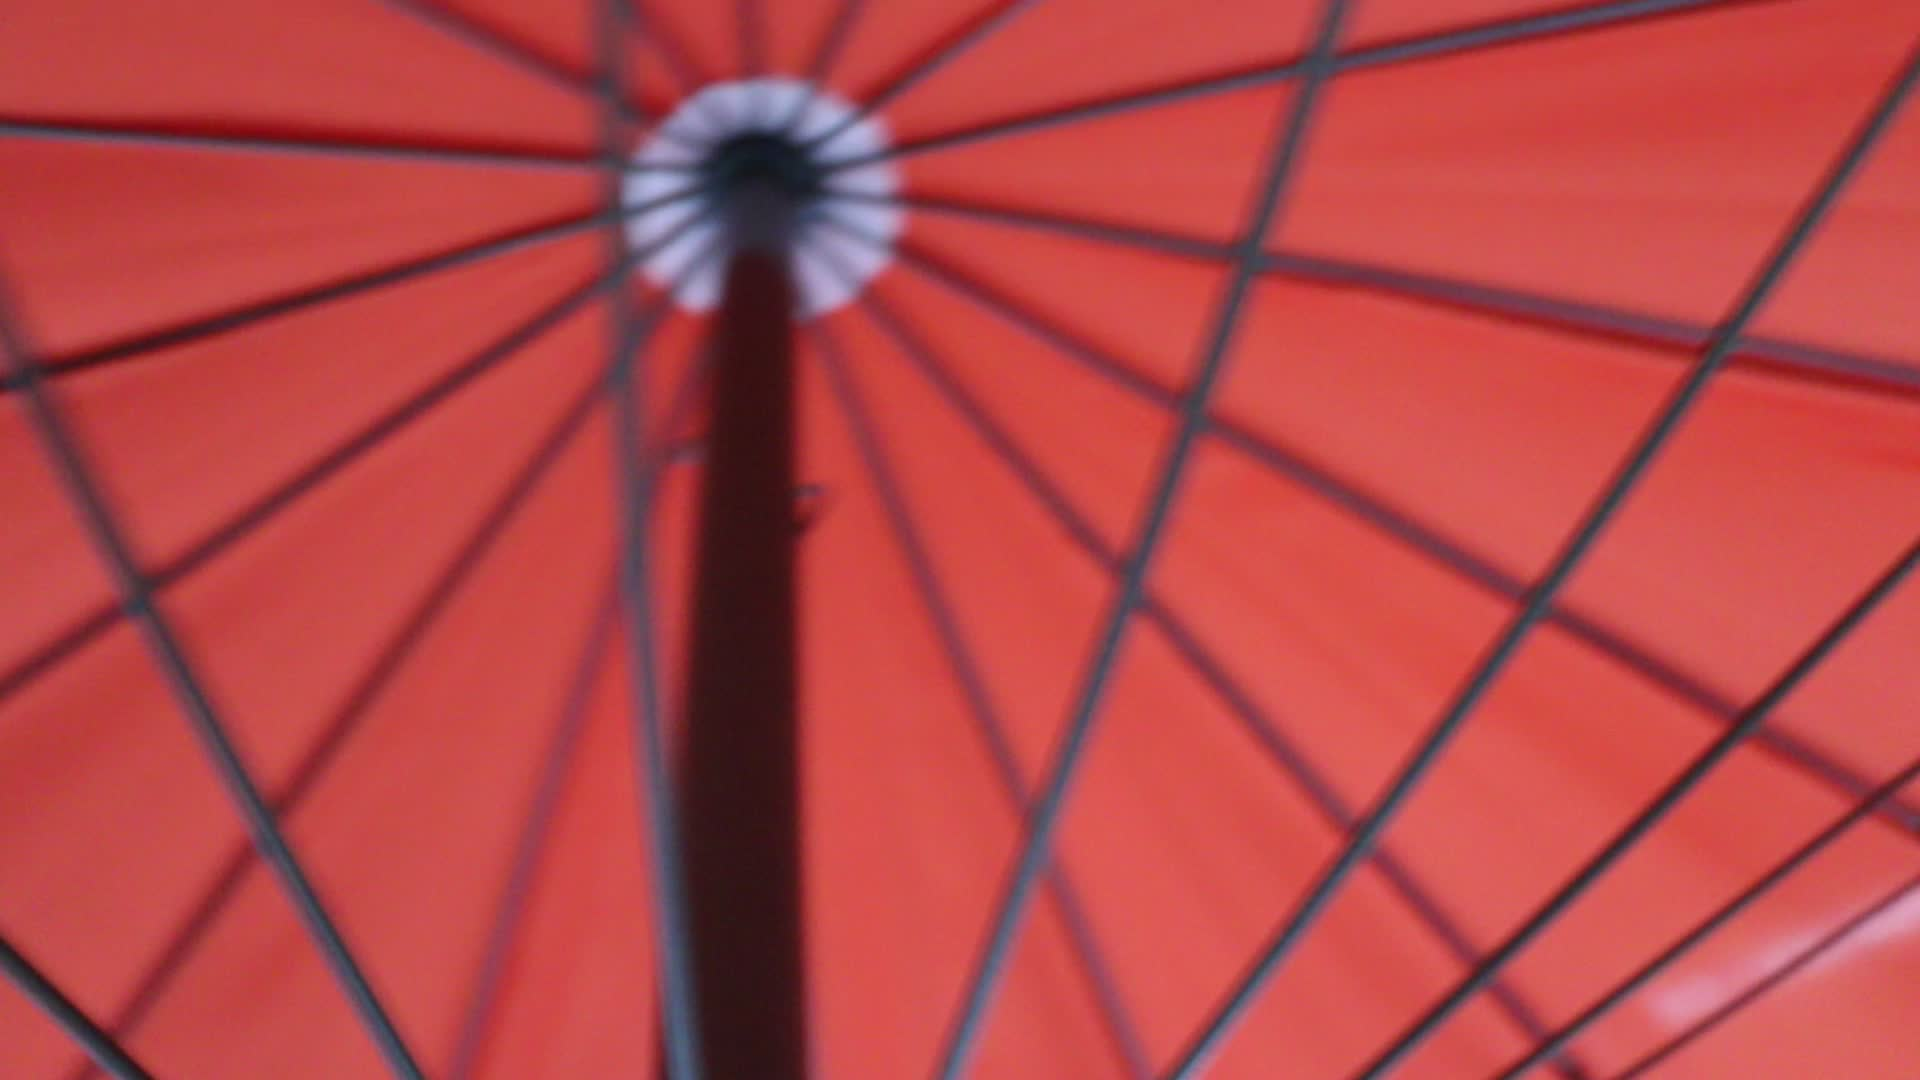 9ft 2.7m steel pole with 24 ribs aluminum crank garden umbrella parasol for your outdoor life